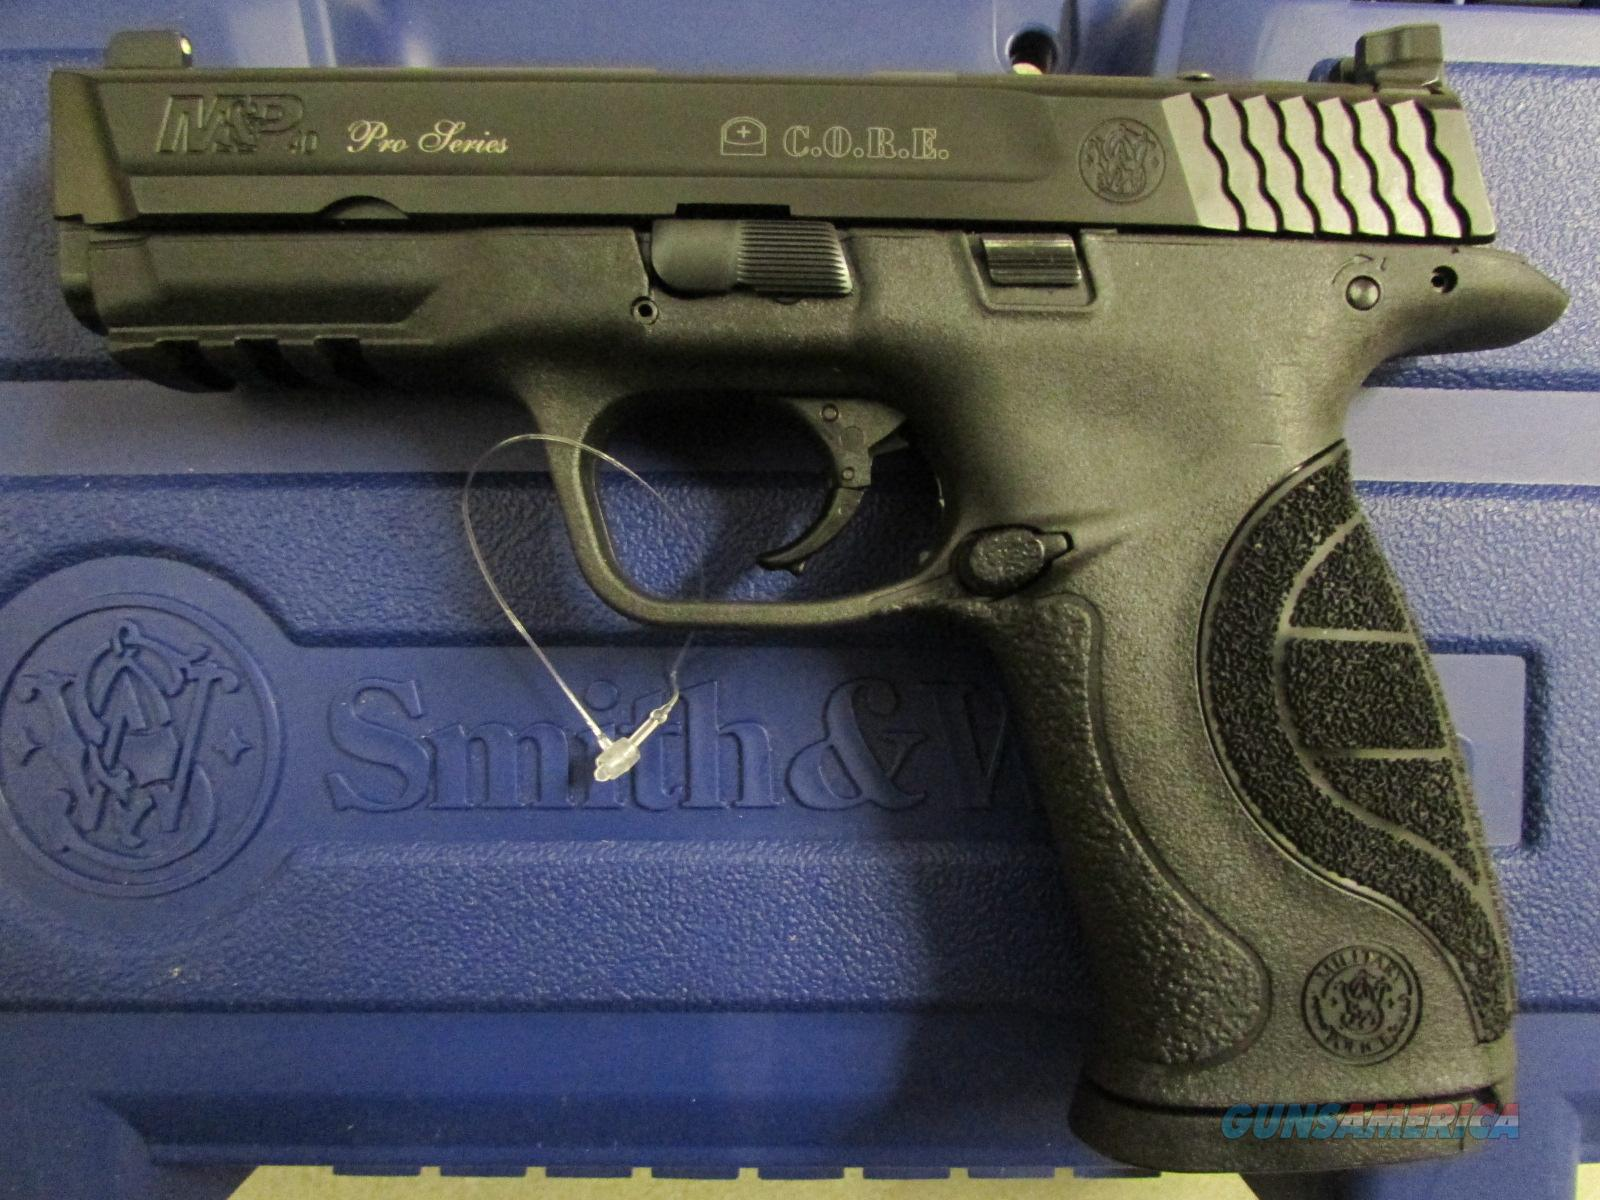 Smith & Wesson M&P40 Pro Series C.O.R.E. .40 S&W 178060  Guns > Pistols > Smith & Wesson Pistols - Autos > Polymer Frame